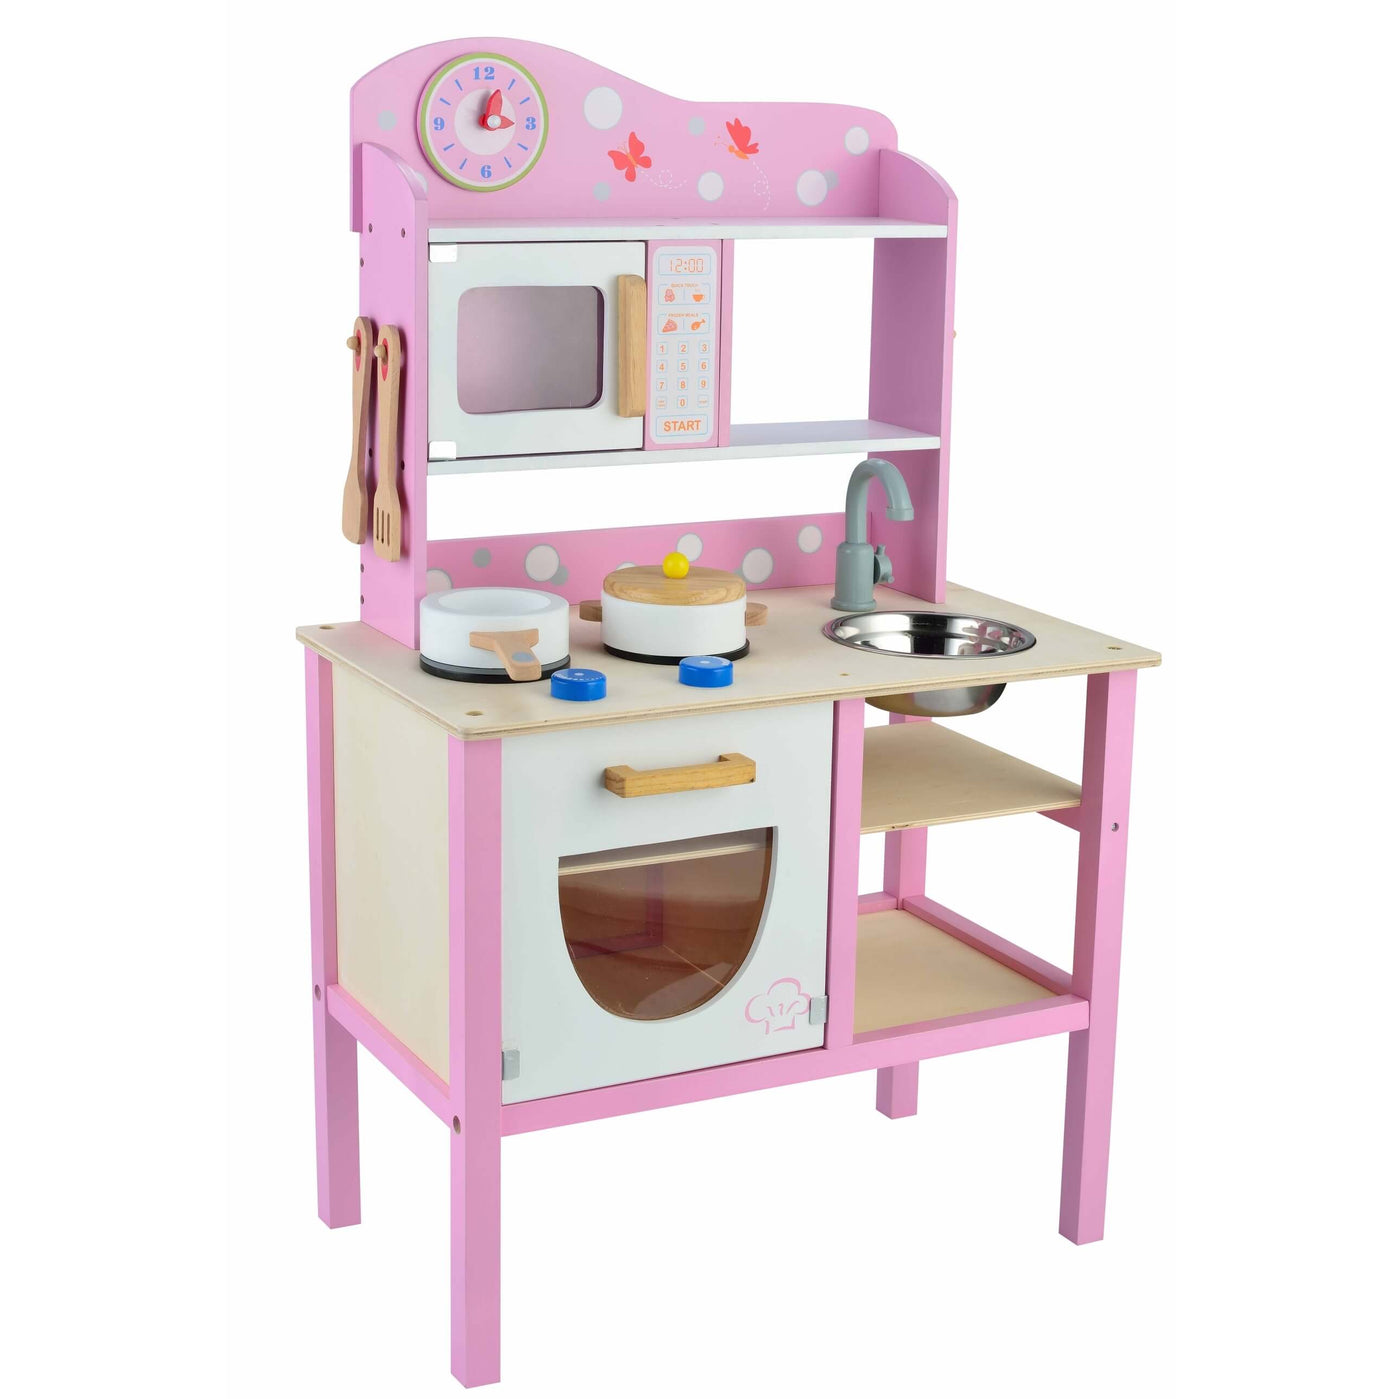 Butternut pink wooden kids play kitchen set with for Kitchen set toys divisoria